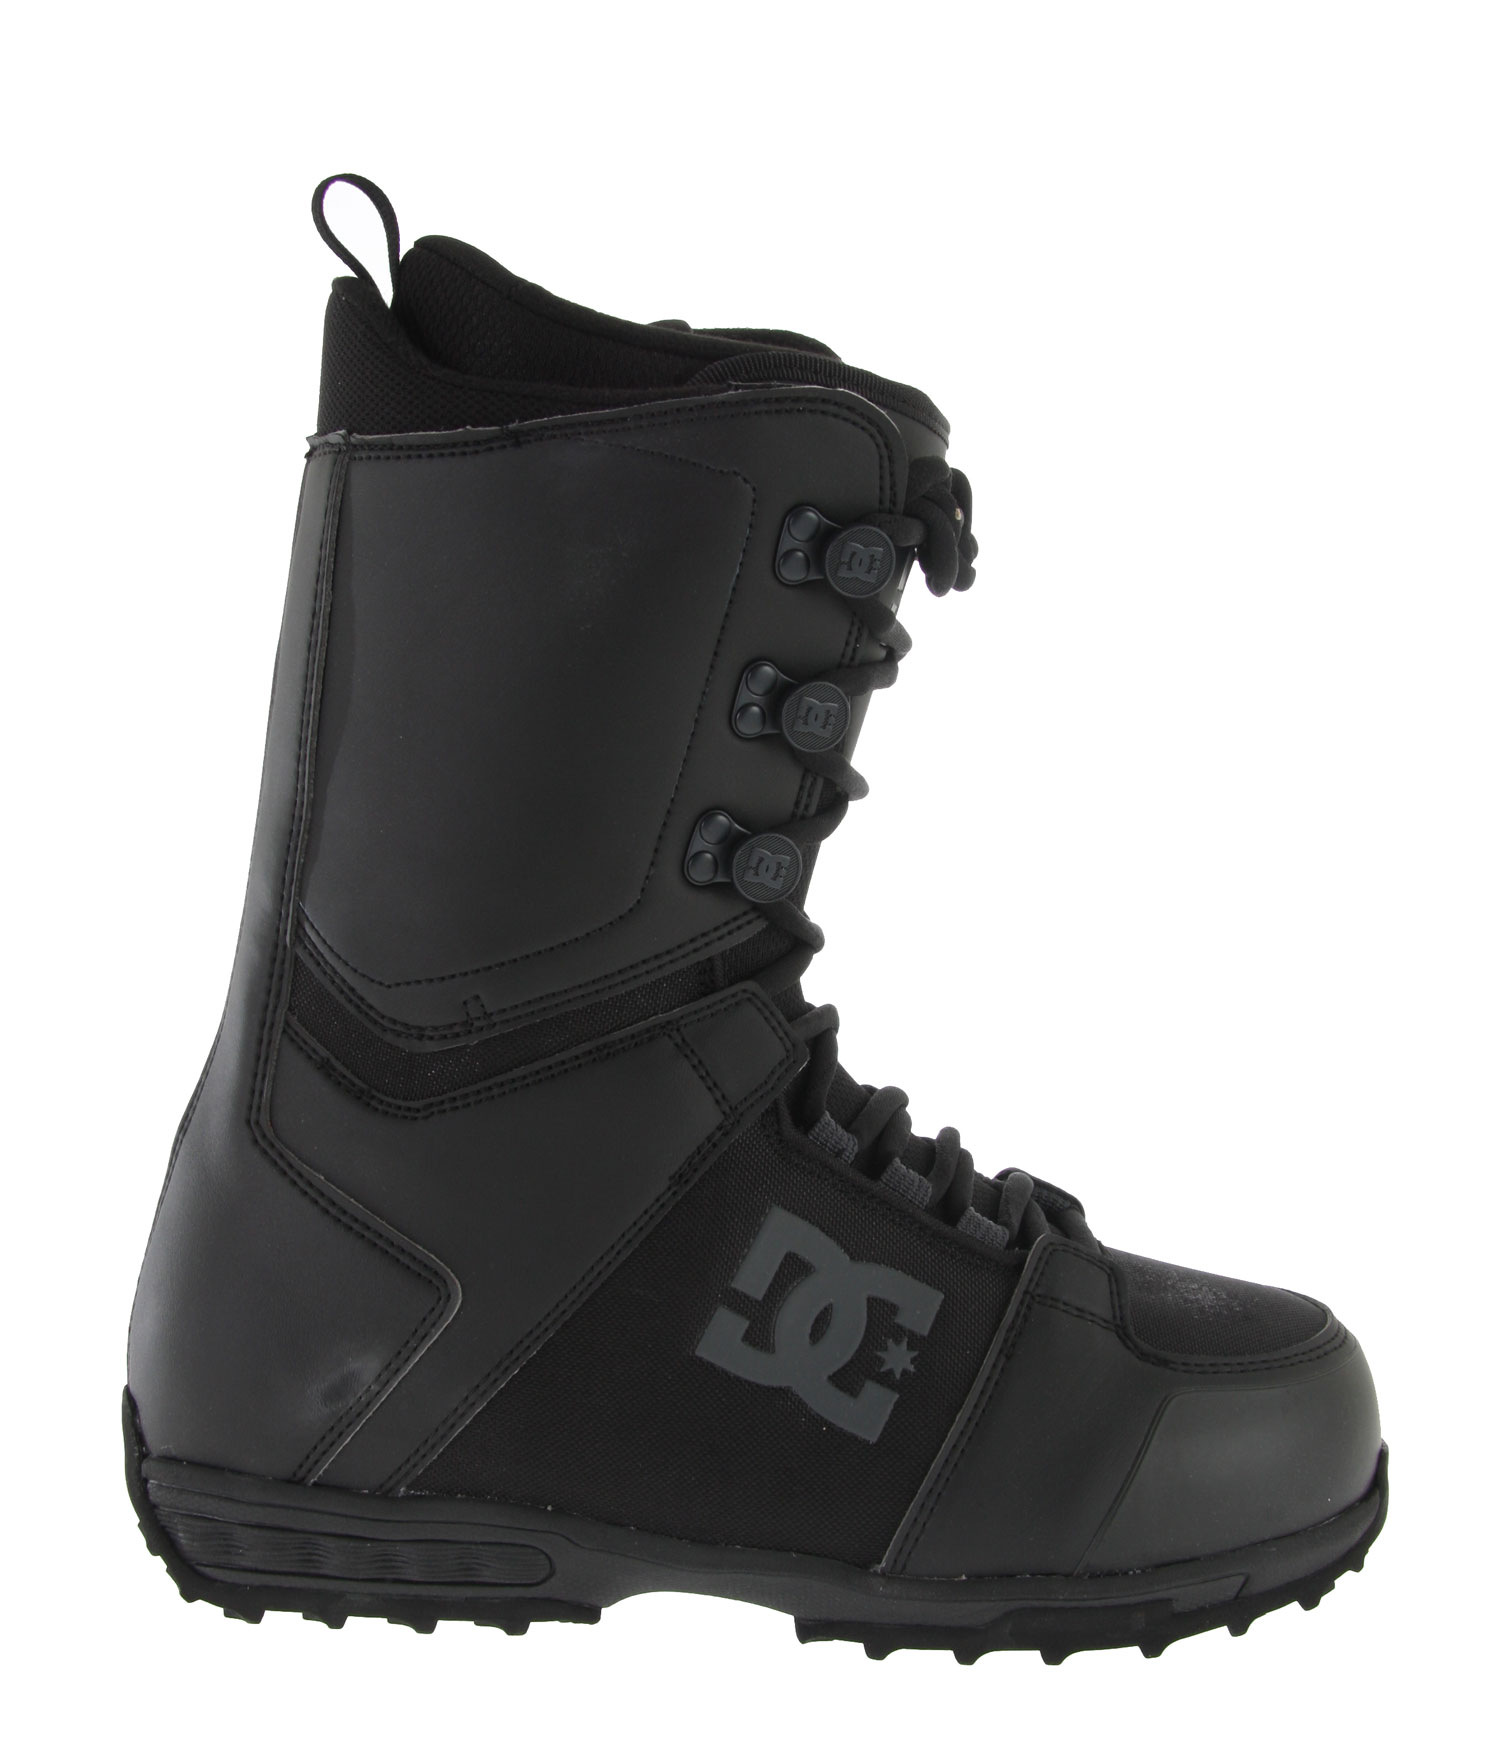 Snowboard The DC Rogan Snowboard Boots are top of the line in style and comfort. These boots feature a welded backstay to keep your feet firm and tracked into the snowboard alignment. Additionally, there is the internal ankle harness to keep your ankles firm and well adjusted while snowboarding. Consequently, there is a command liner that fits securely inside the boots like a thick sock to keep out moisture and cold weather. Moreover, the DC logo boldly stands out on the side of these boots.Key Features of the DC Rogan Snowboard Boots: Synthetic Leather & PU coated mesh Traditional Lace 3D Tongue Articulation Welded Backstay Internal Ankle Harness EVA Midsole Command Liner Flex Rating 6 - $101.95